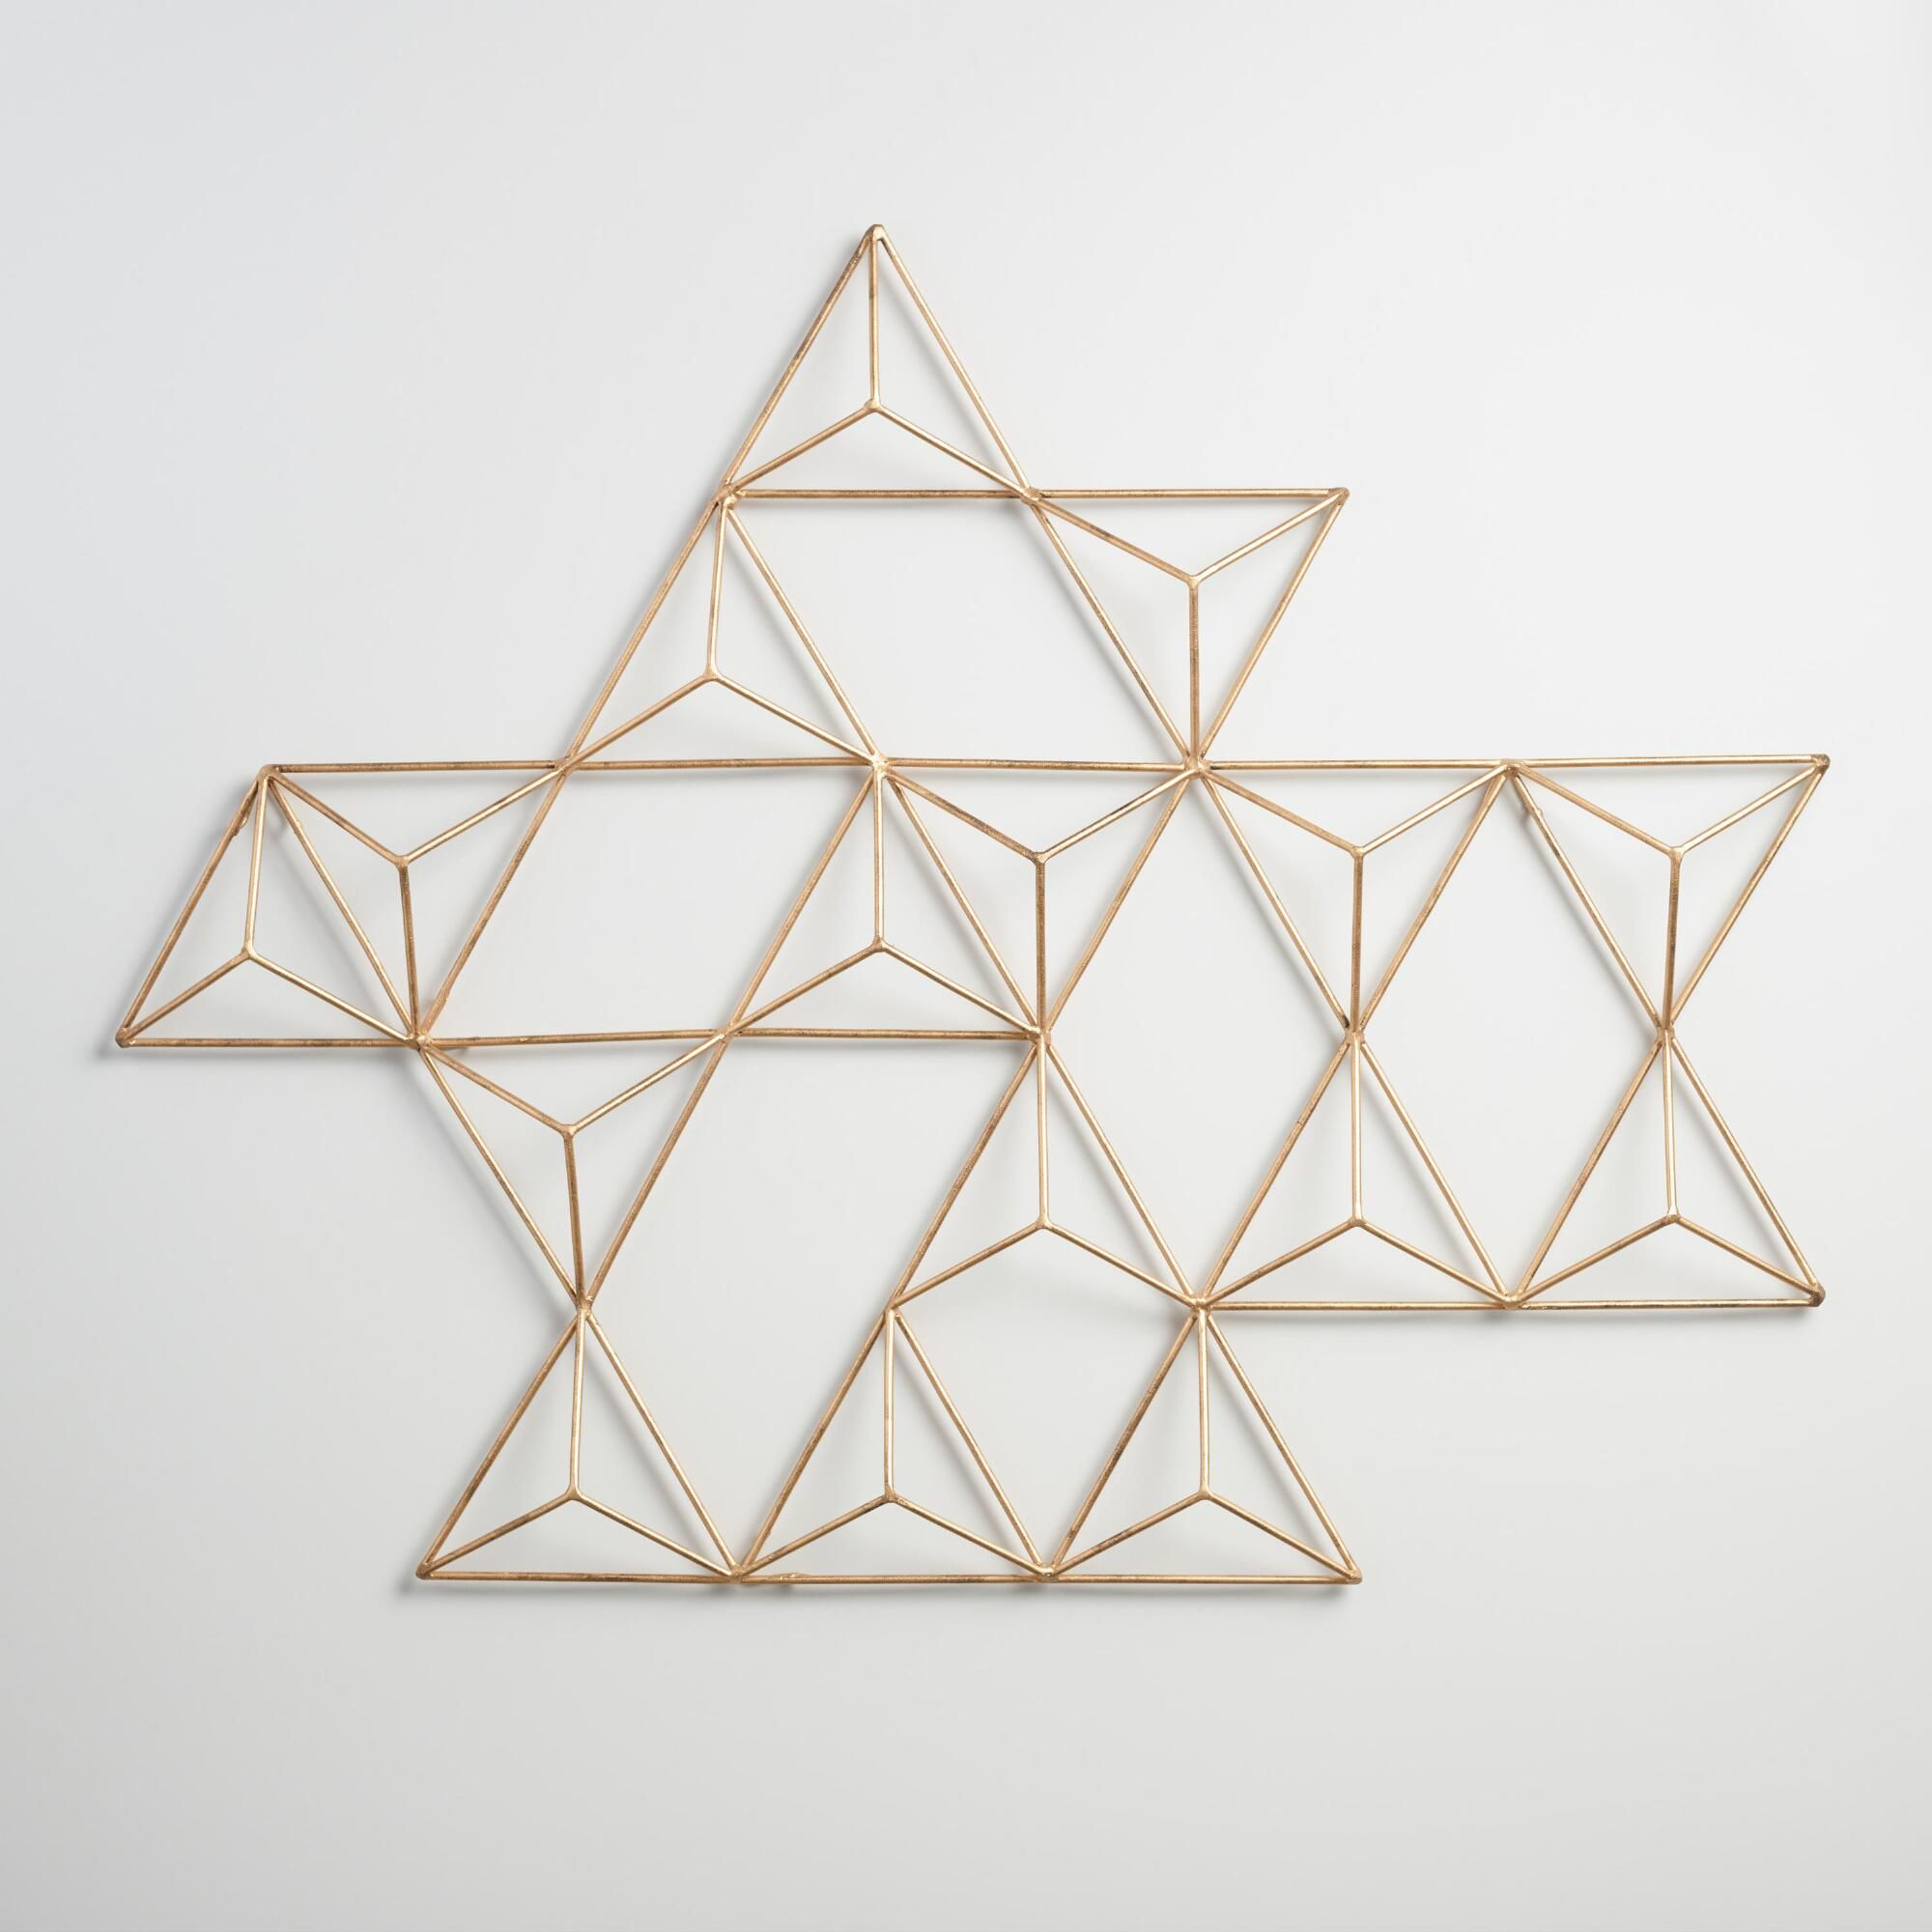 Handcrafted By Indian Artisans, Our Three Dimensional Geometric Wall Art  Makes A Modern Statement